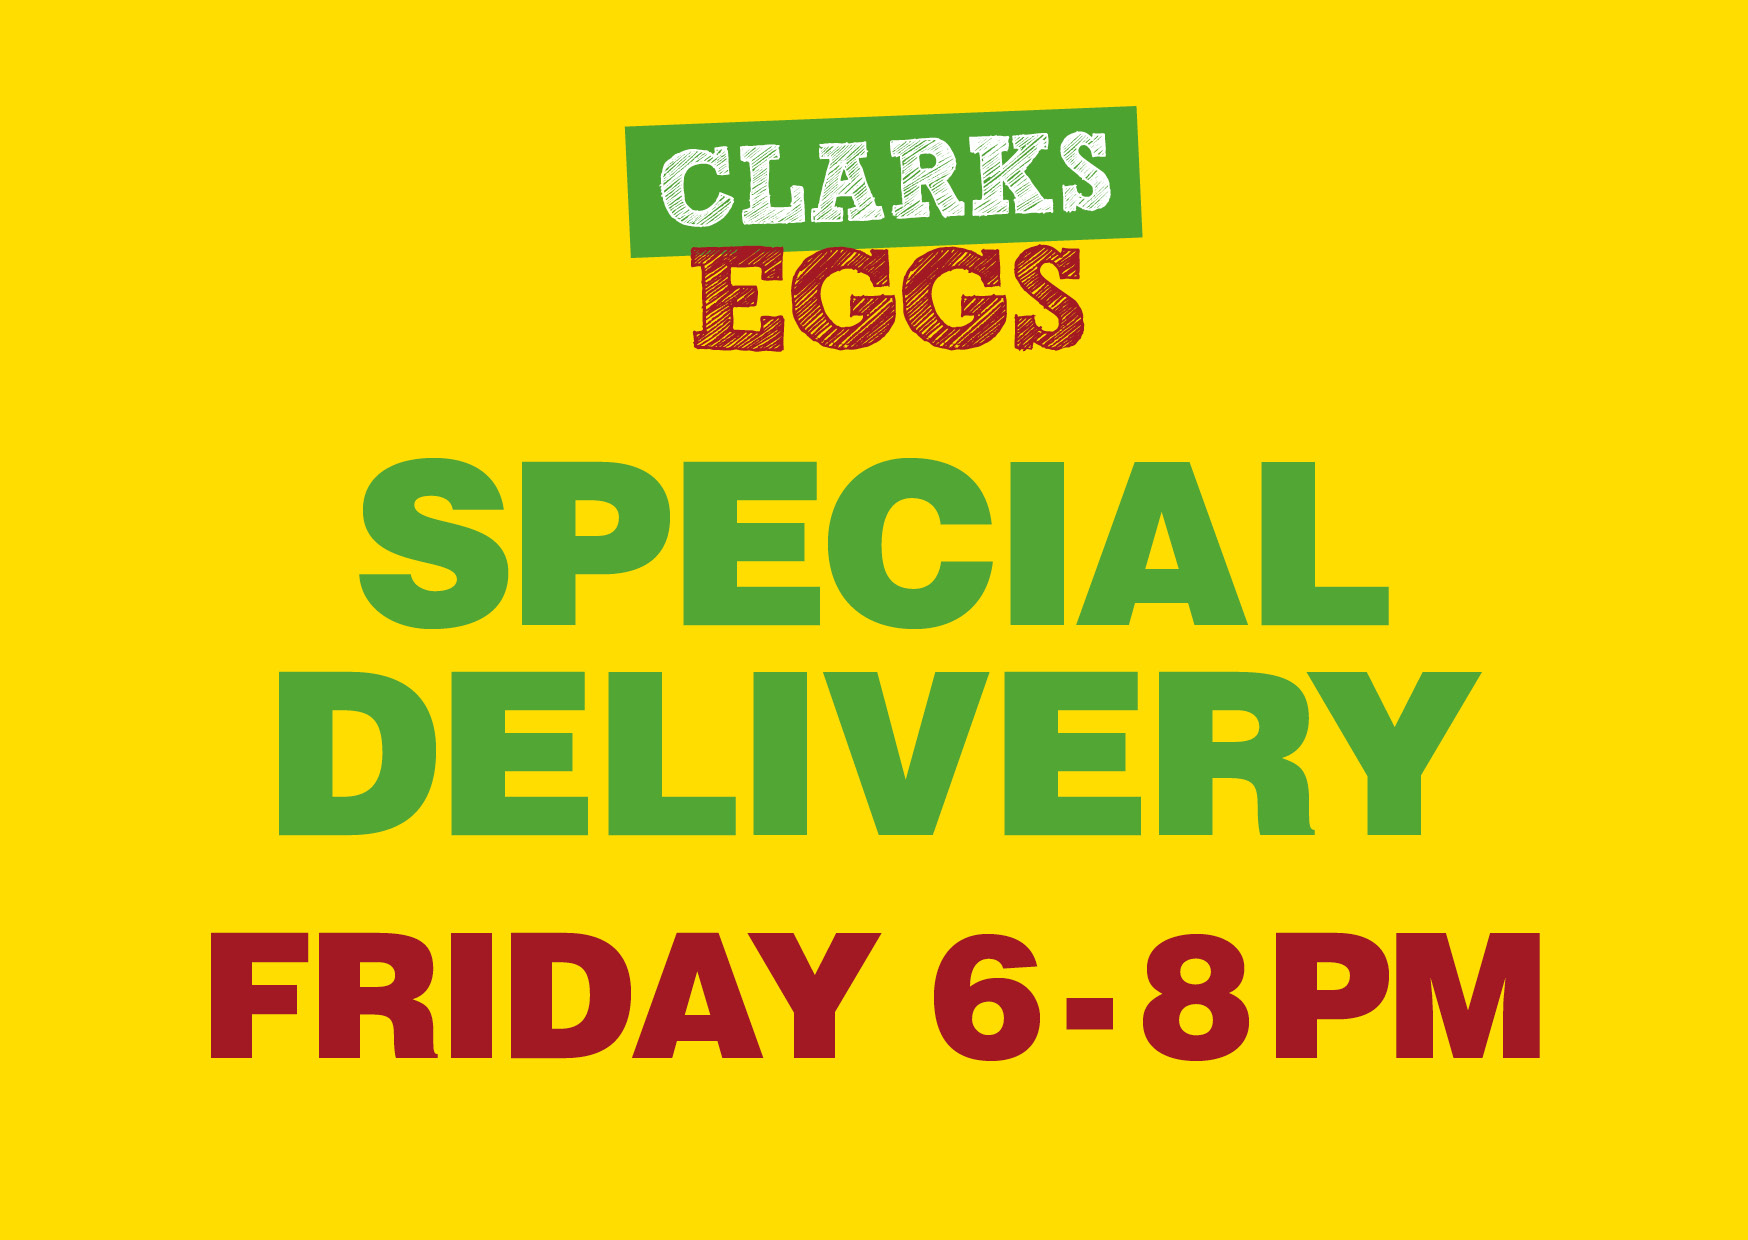 Friday 6-8pm delivery slot